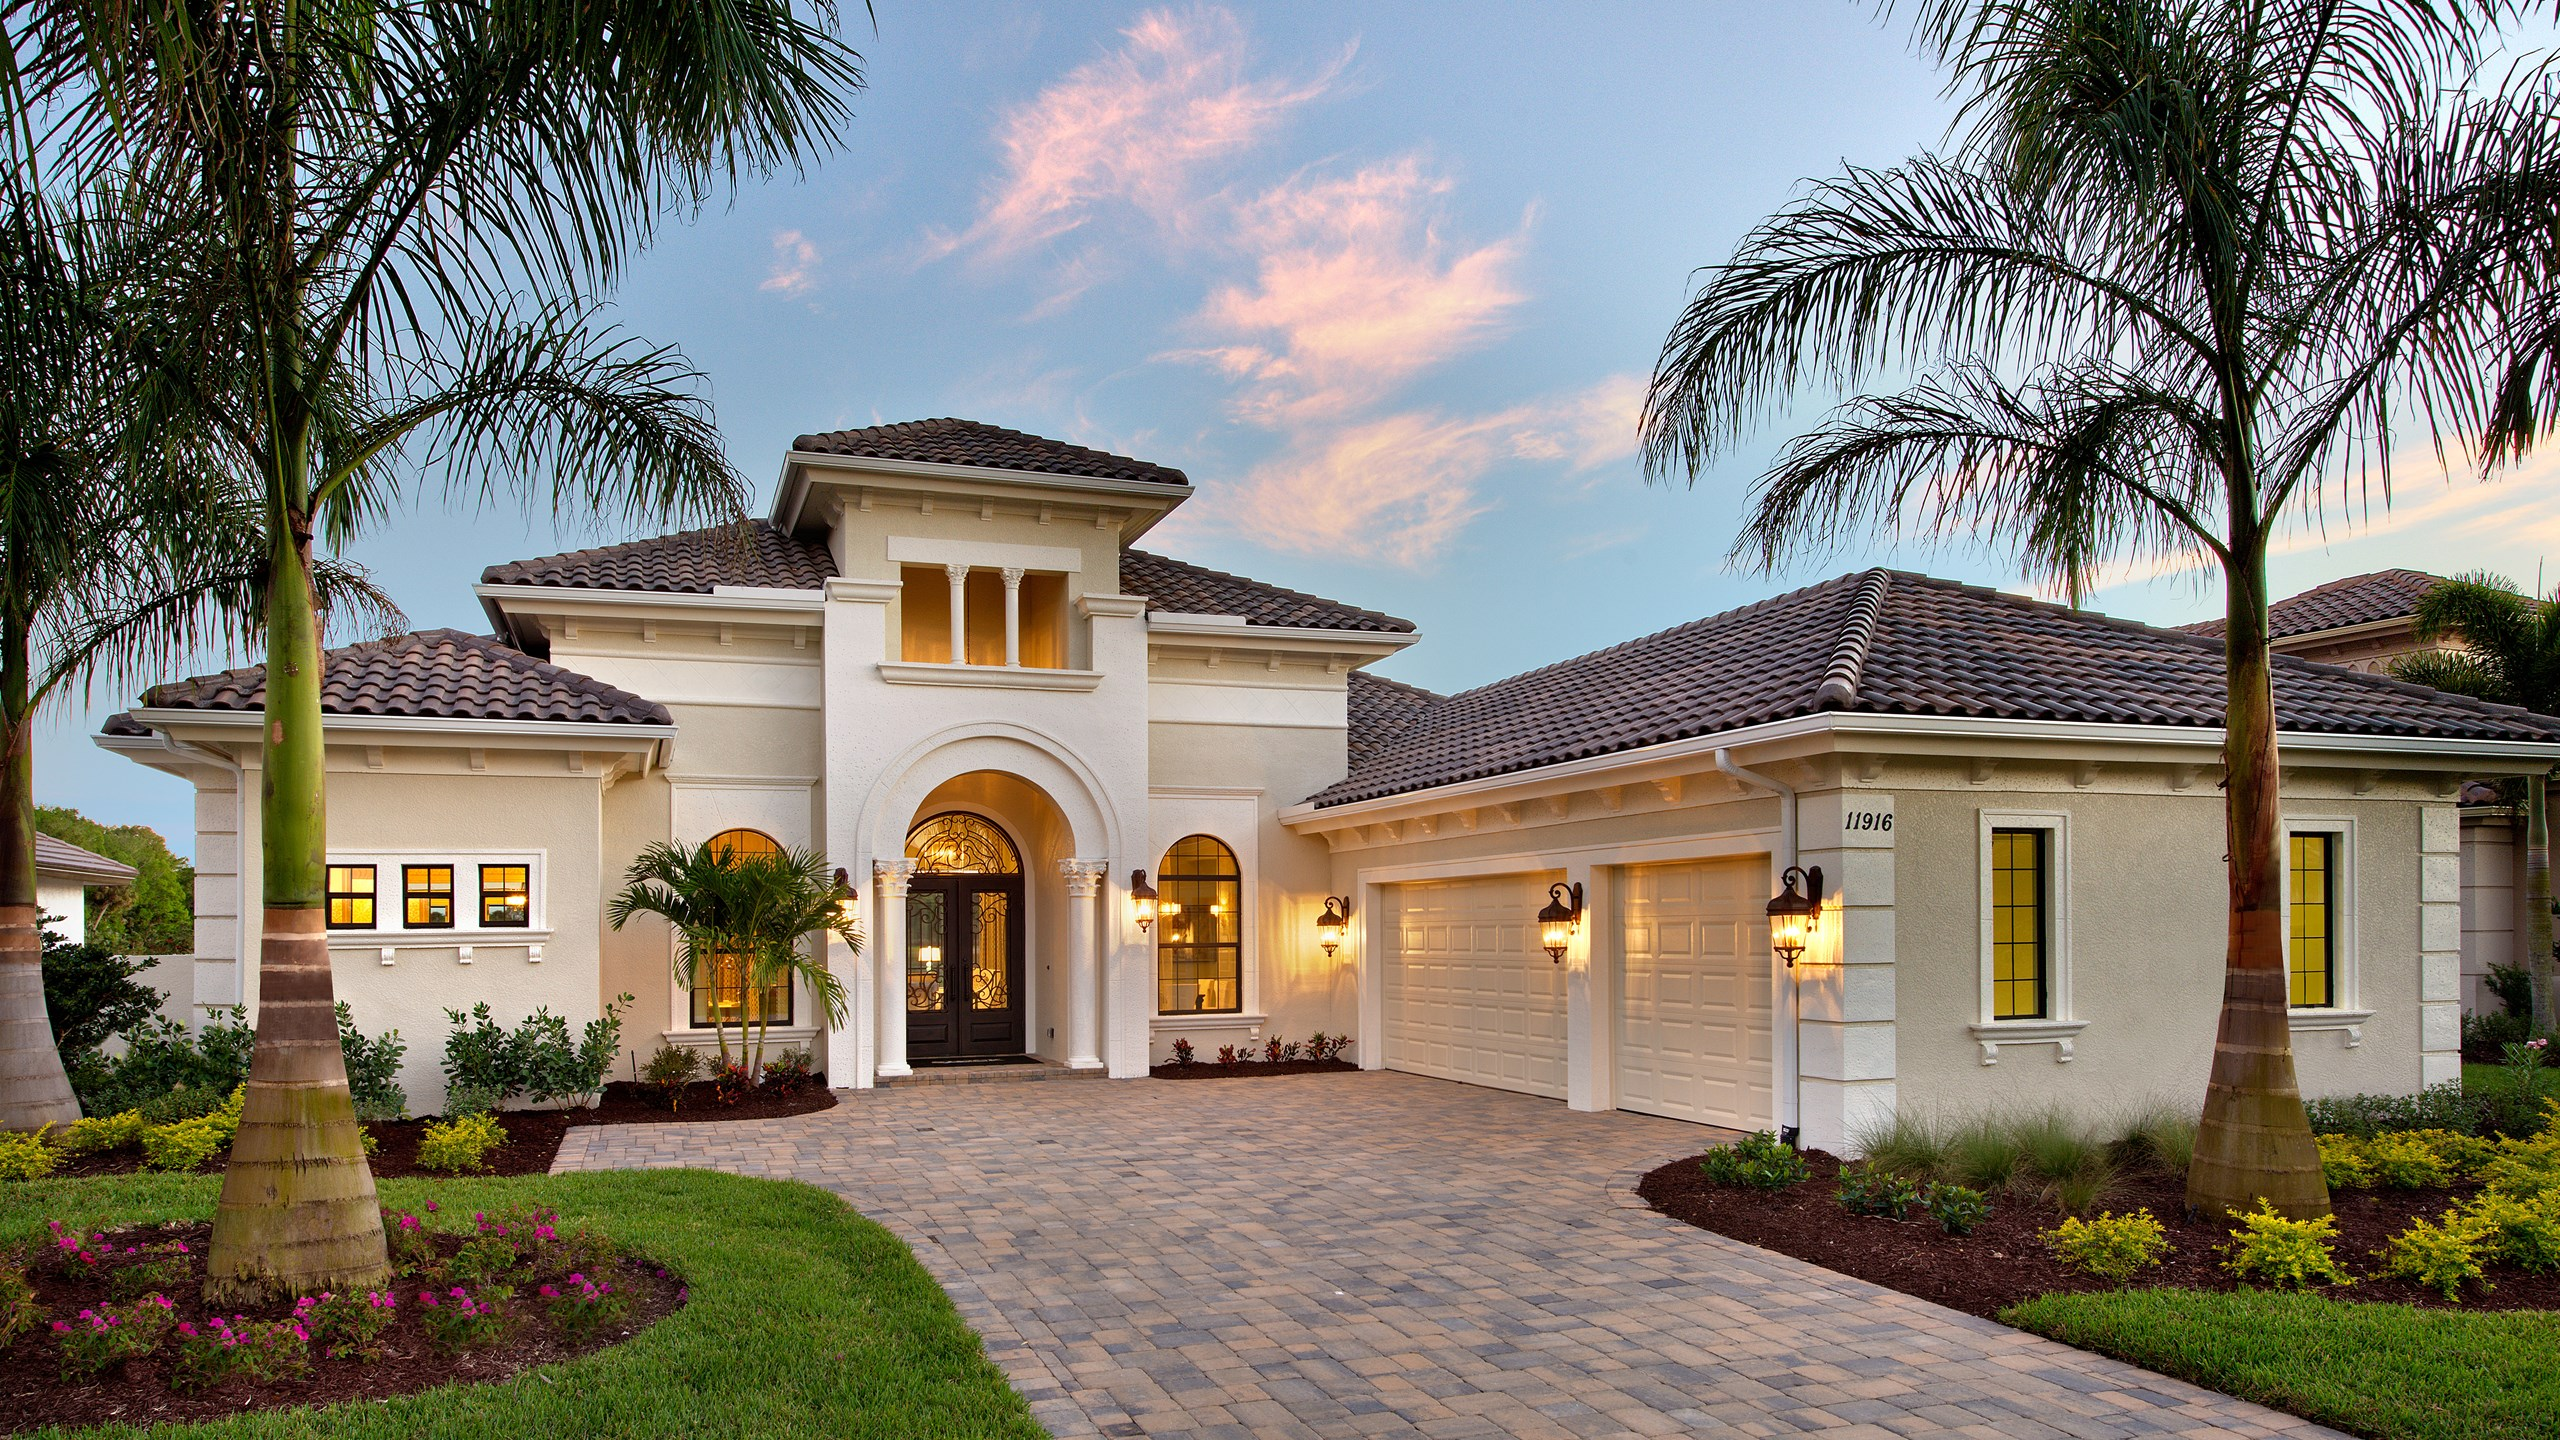 Lakewood Ranch Florida New Homes Buyers Agent, Free Service To All Buyers LakeWood Ranch Florida